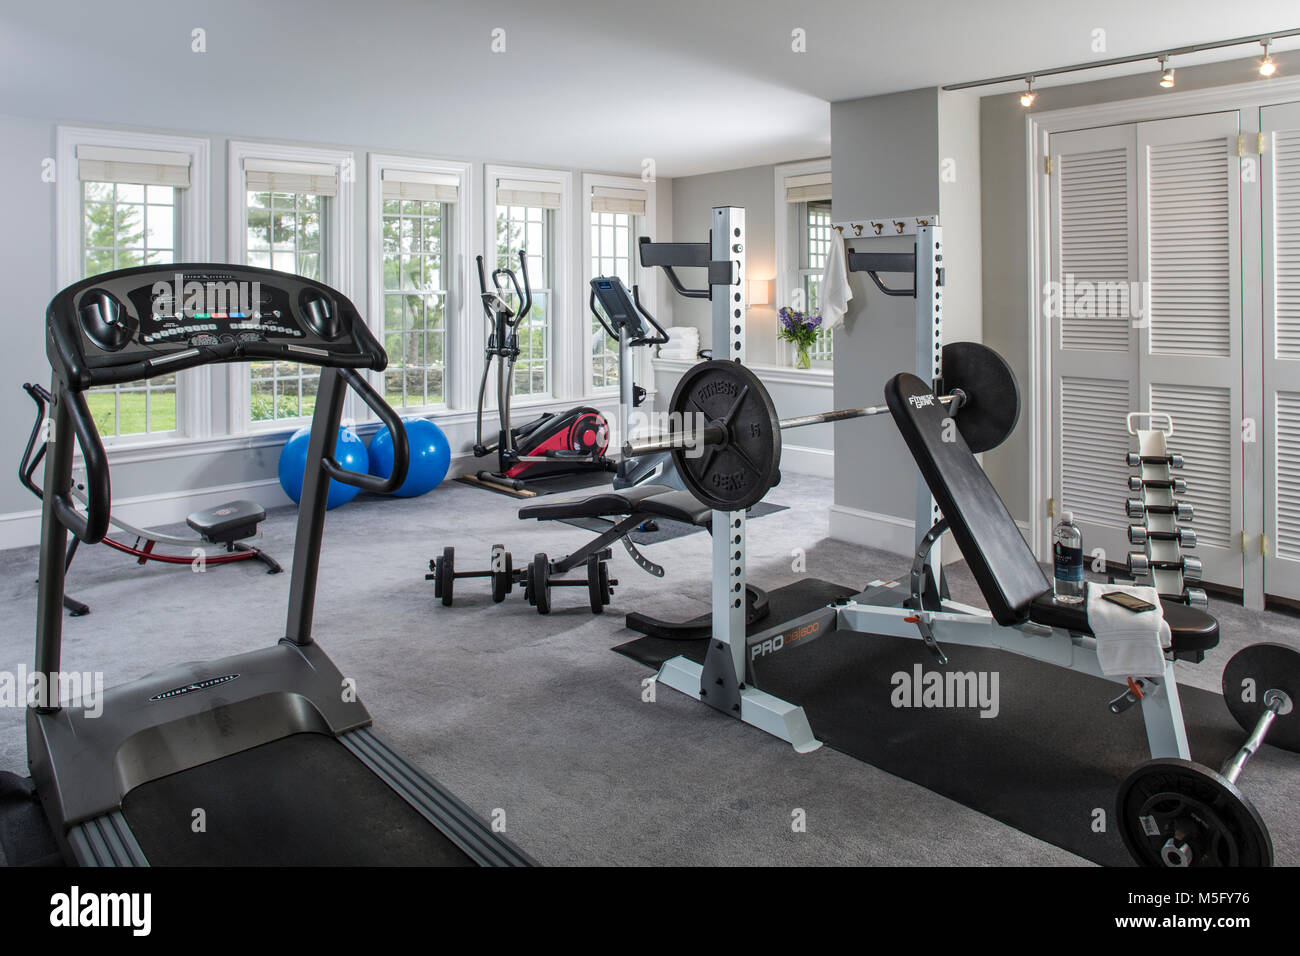 Gym with treadmills weights and machines, Blair Hill Inn, Greenville, Maine - Stock Image